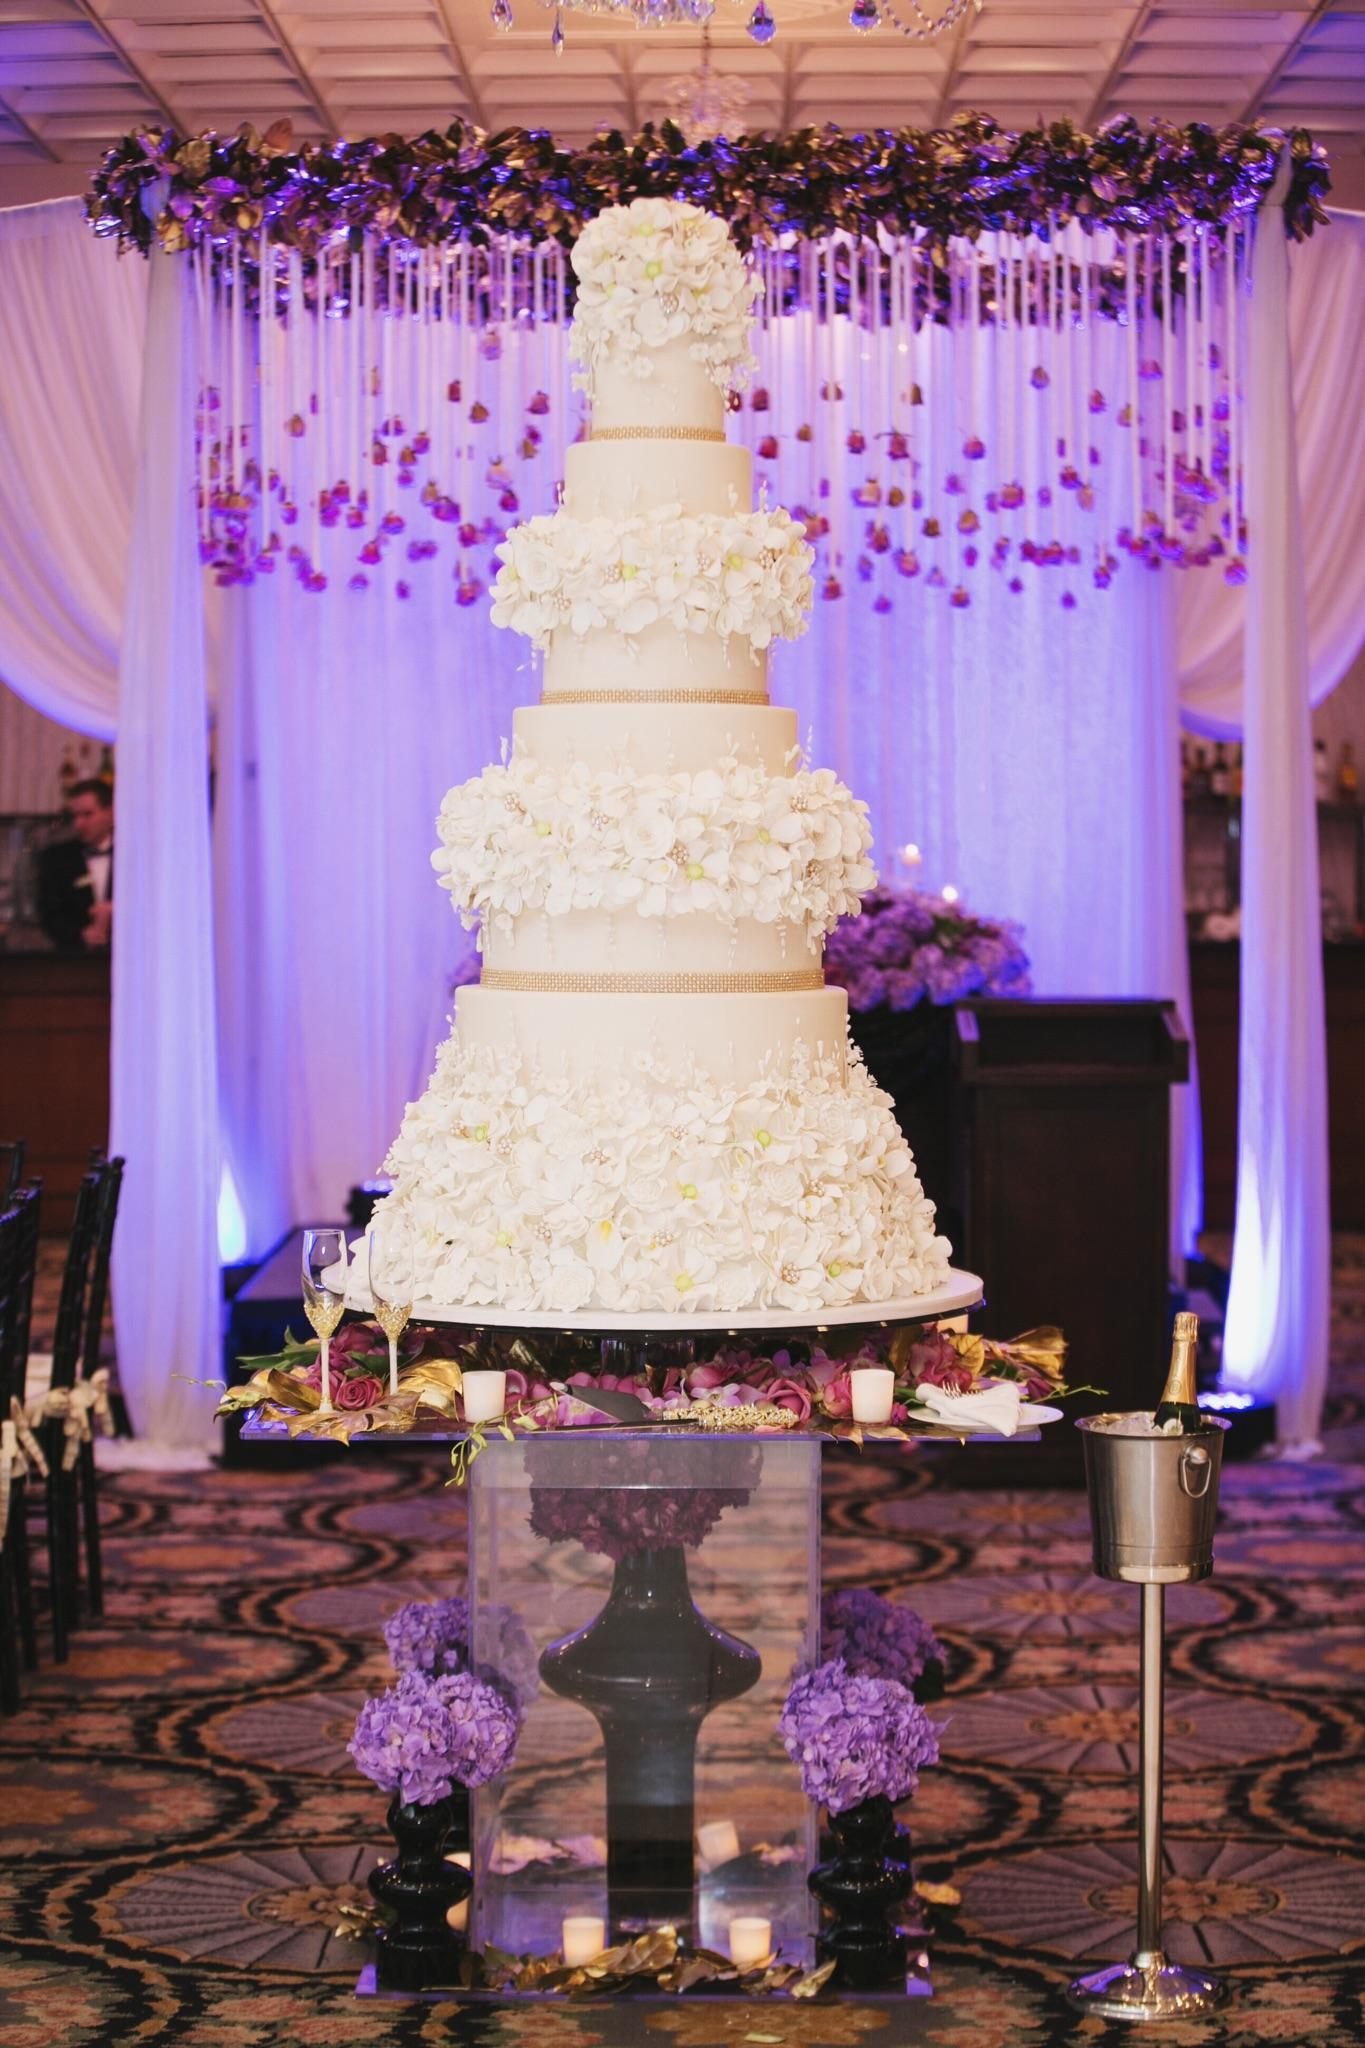 White wedding cake with multiple layers of sugar flowers